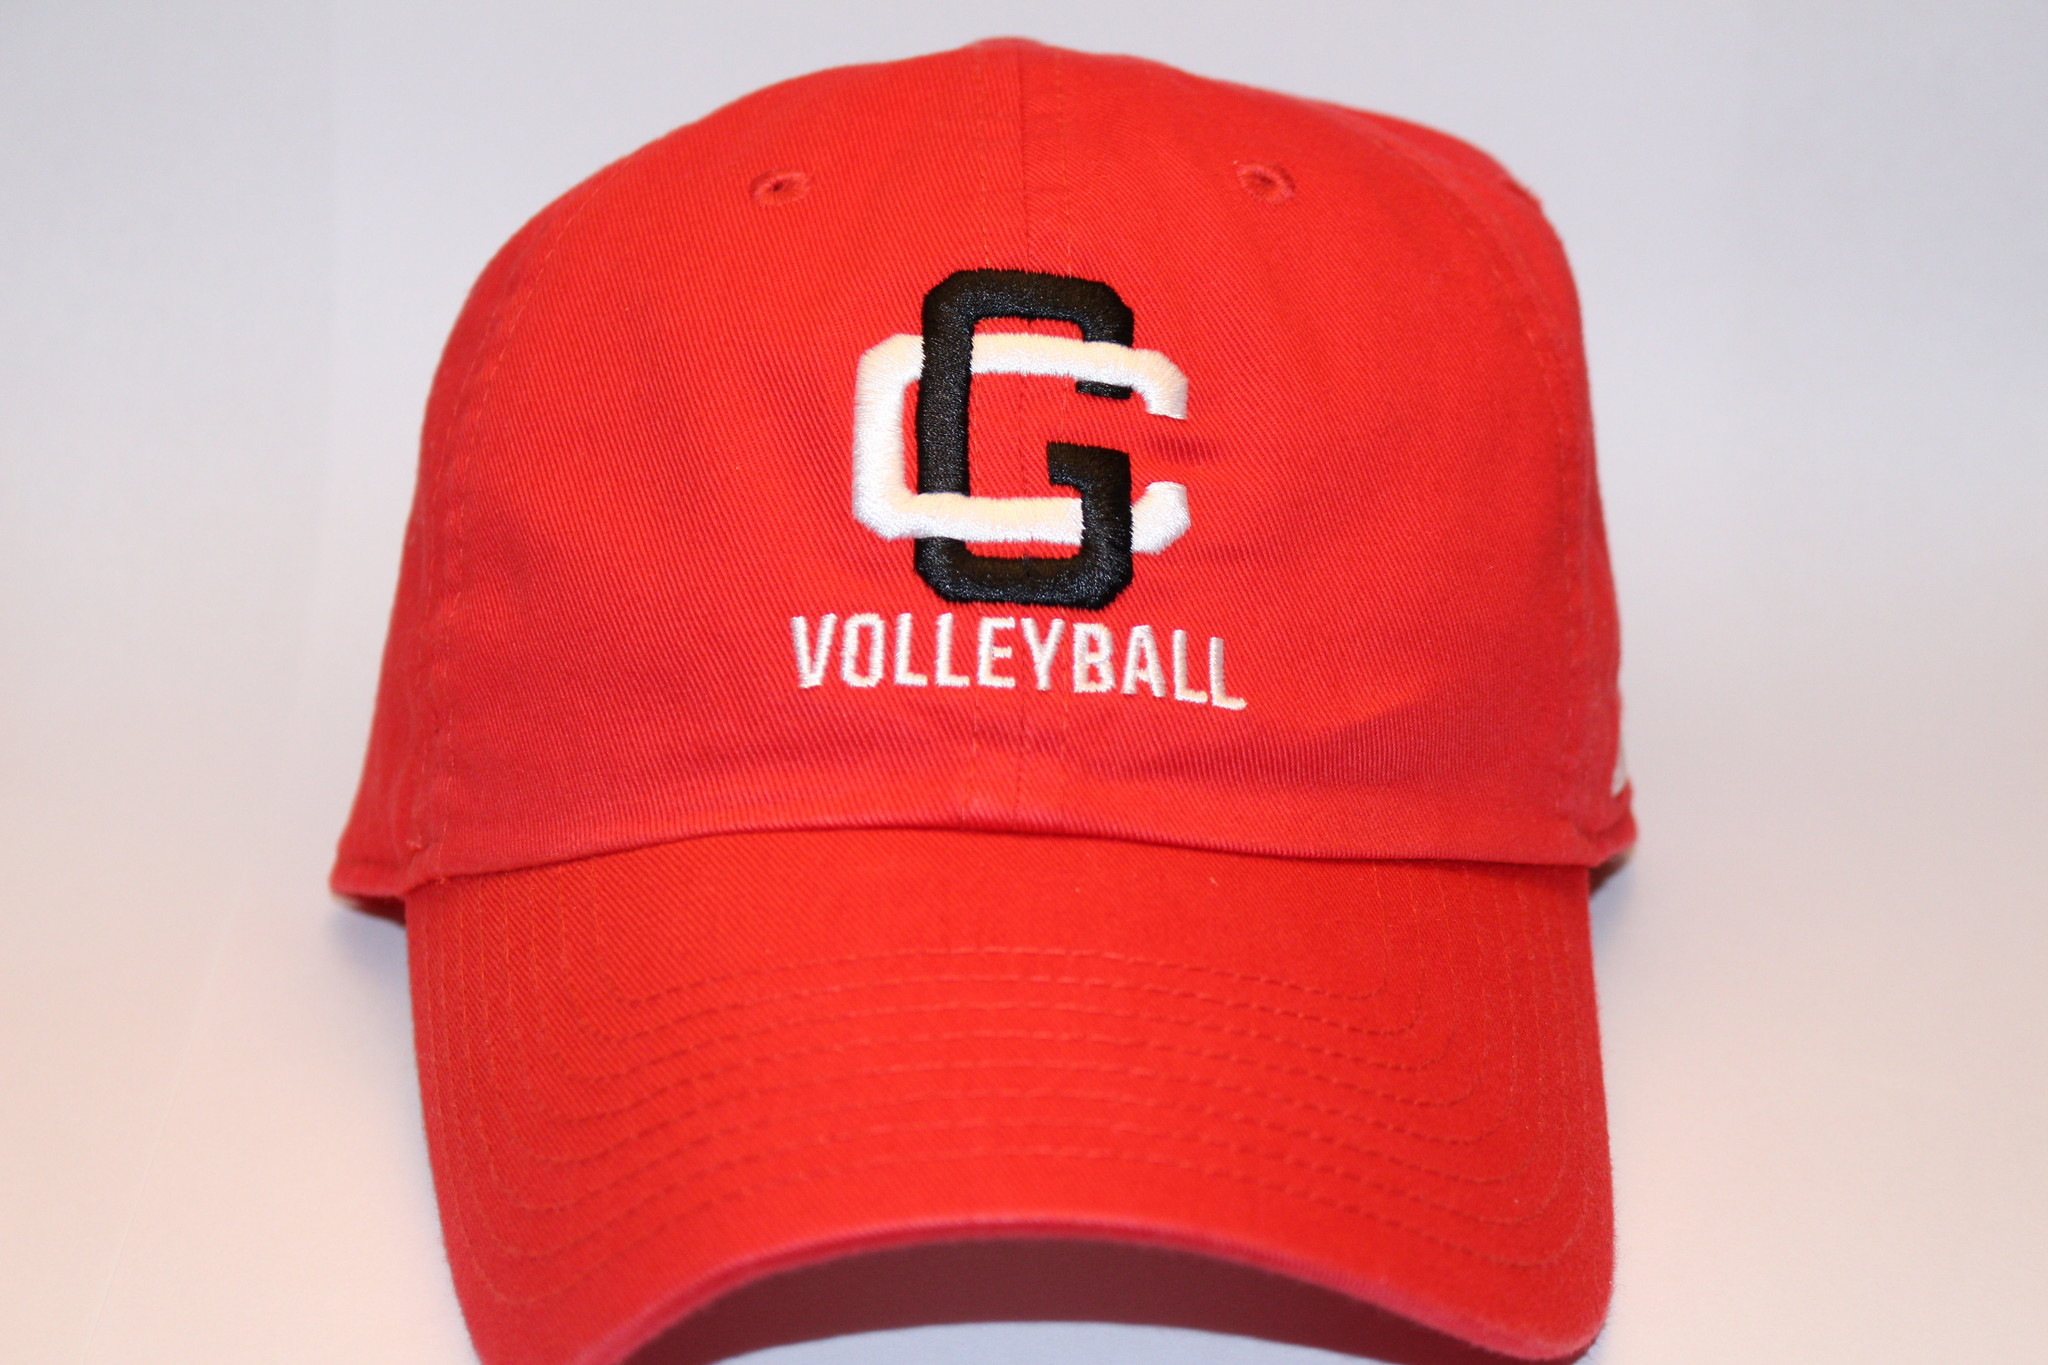 Nike Volleyball Cap